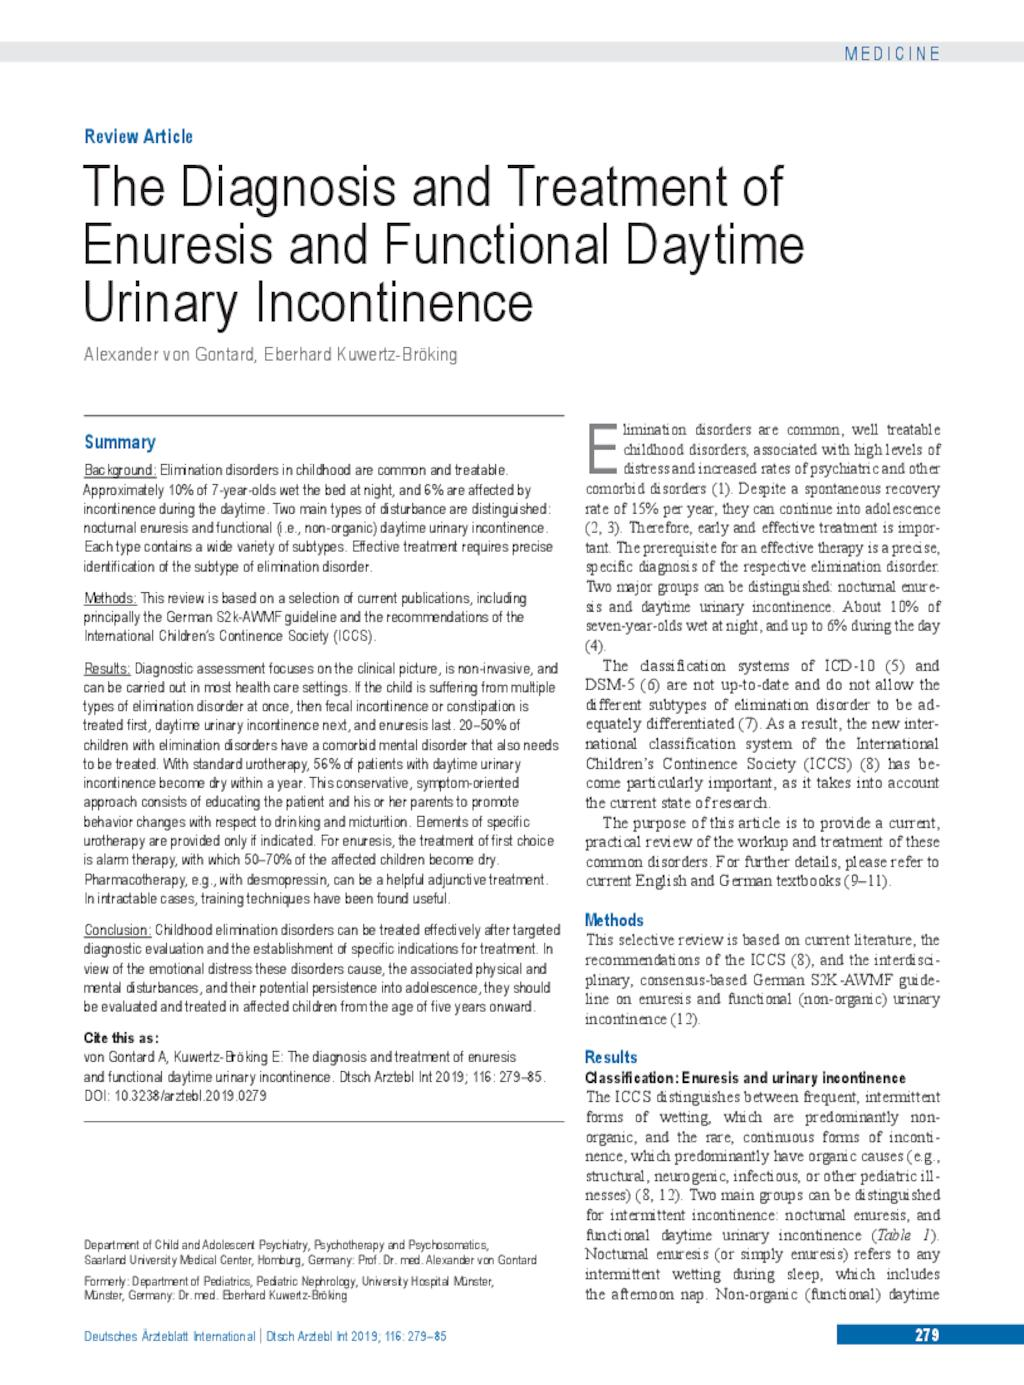 The Diagnosis and Treatment of Enuresis and Functional